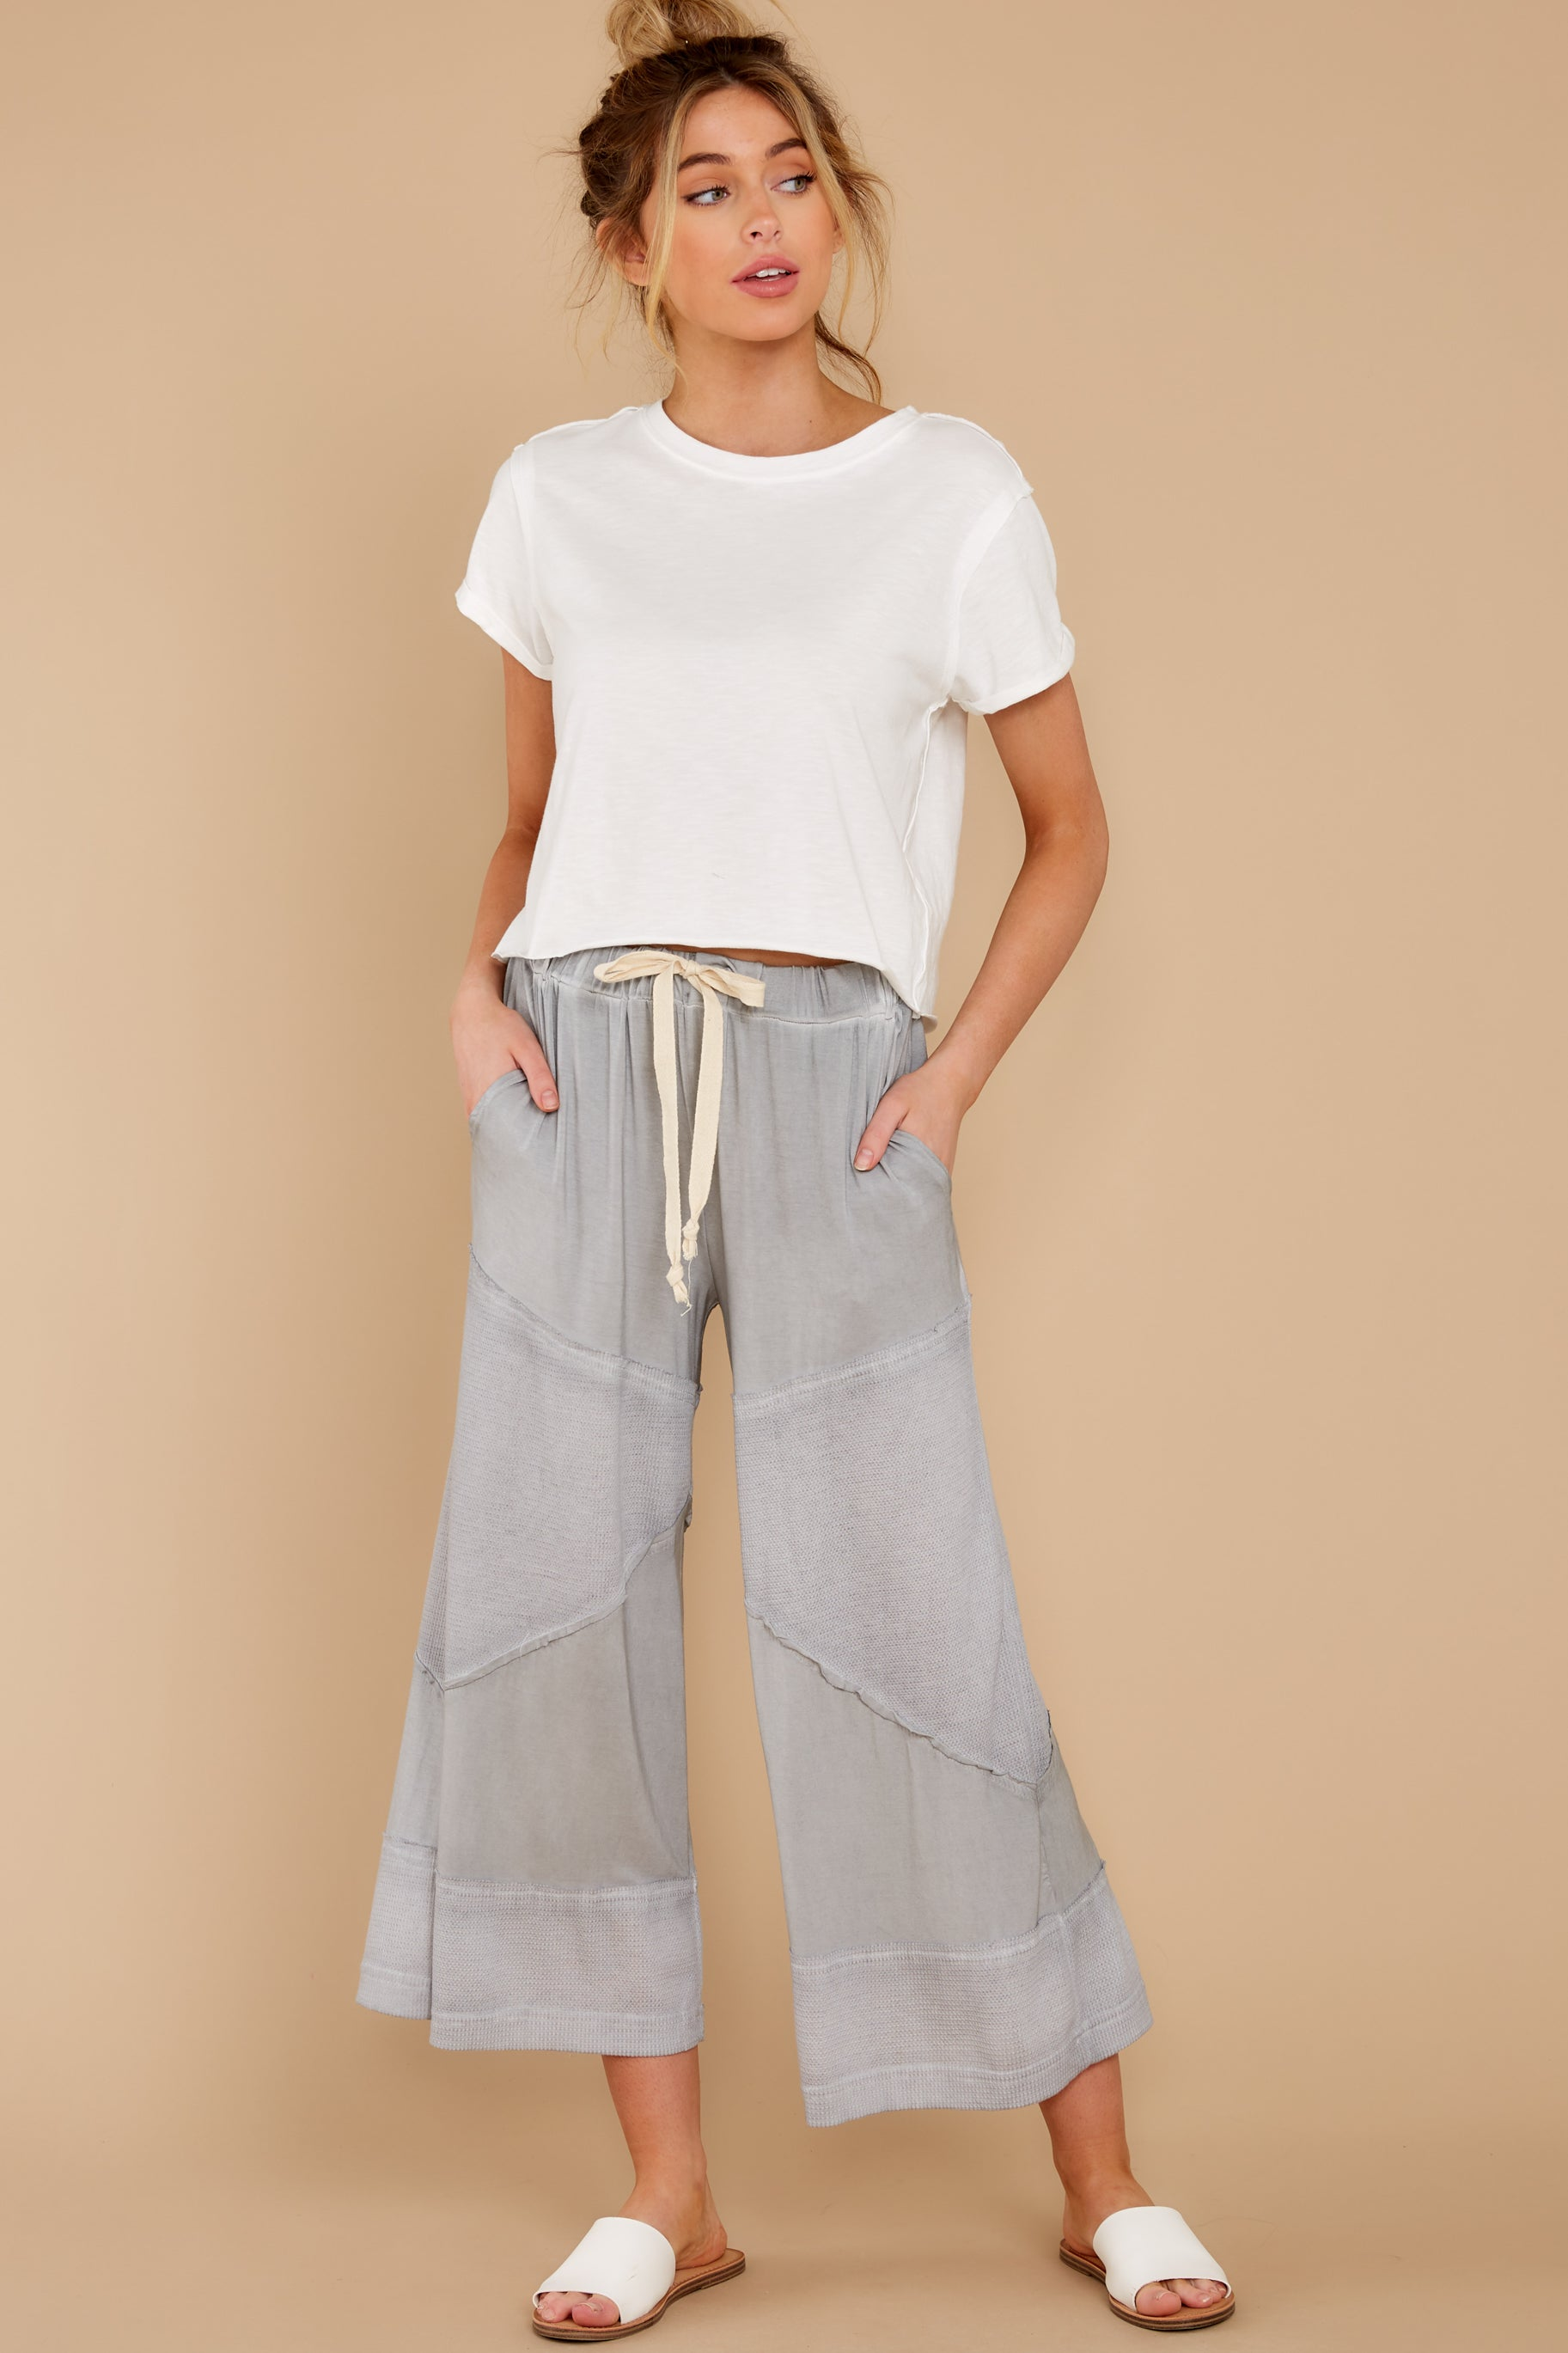 5 On The Other Side Dove Grey Pants at reddress.com